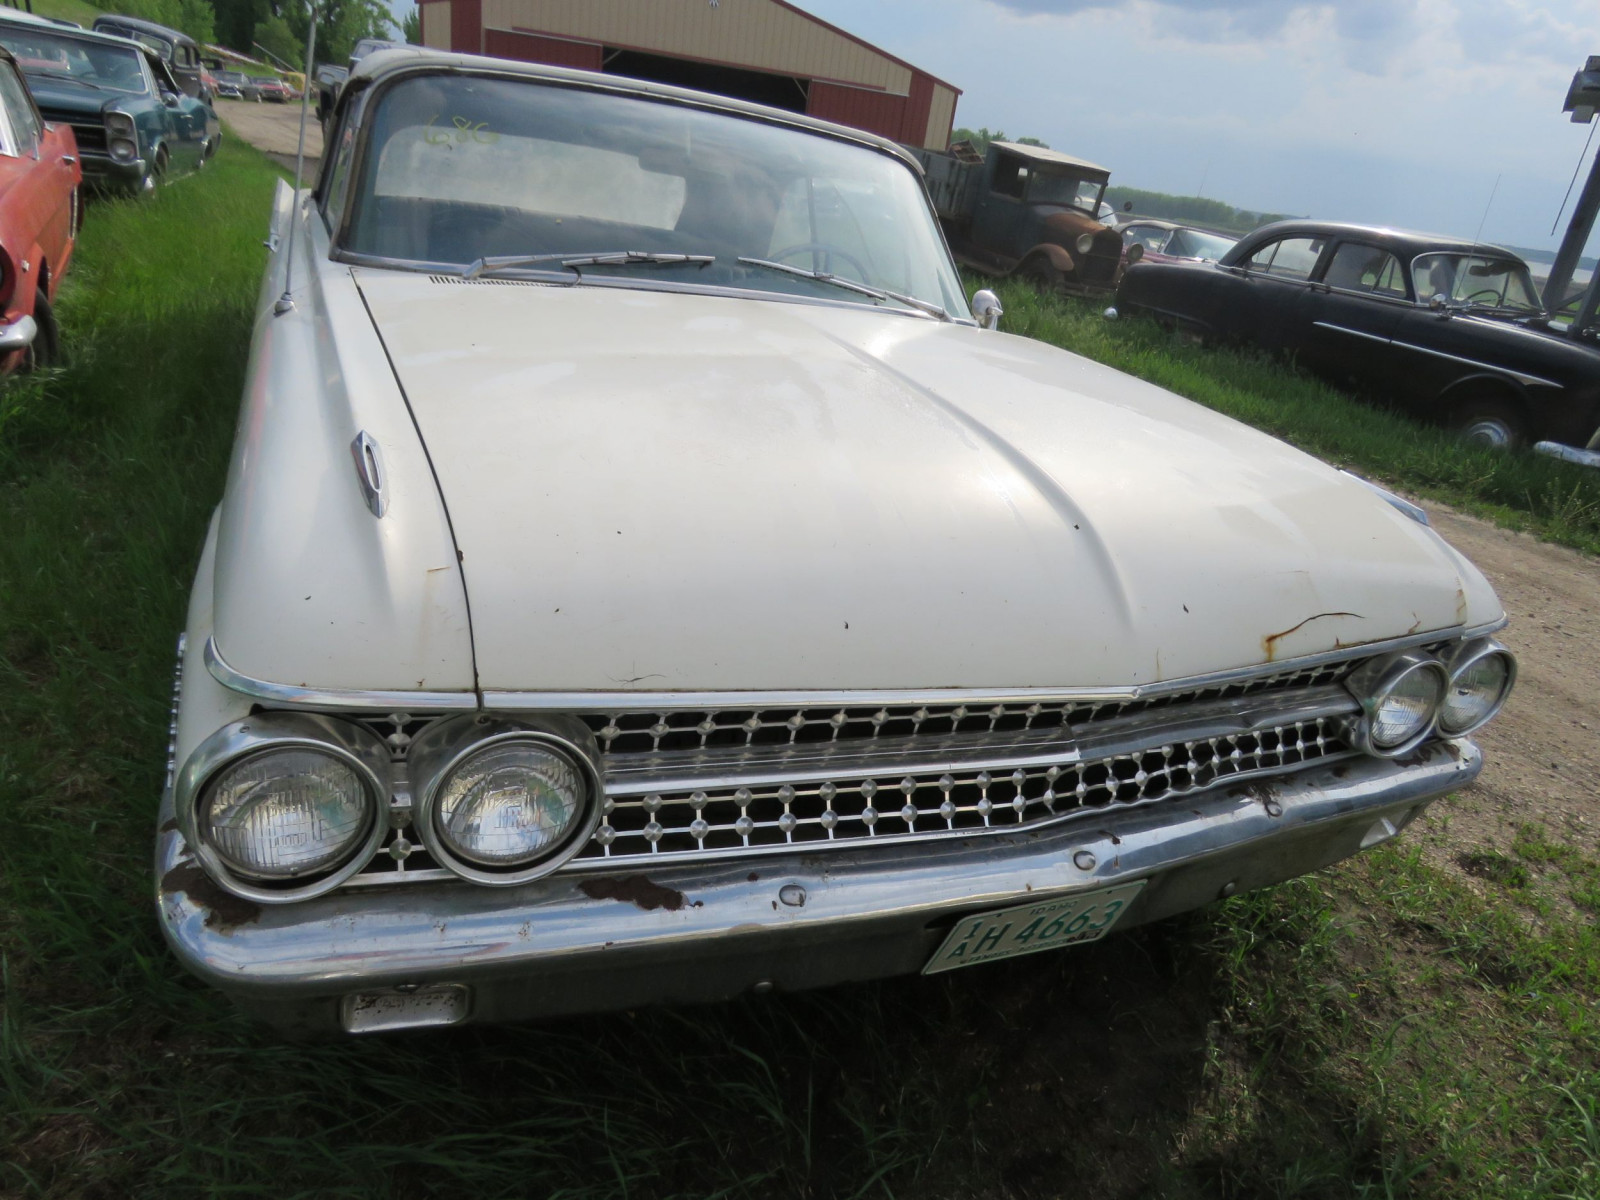 1961 Ford Sunliner Convertible 1G55W143311 - Image 2